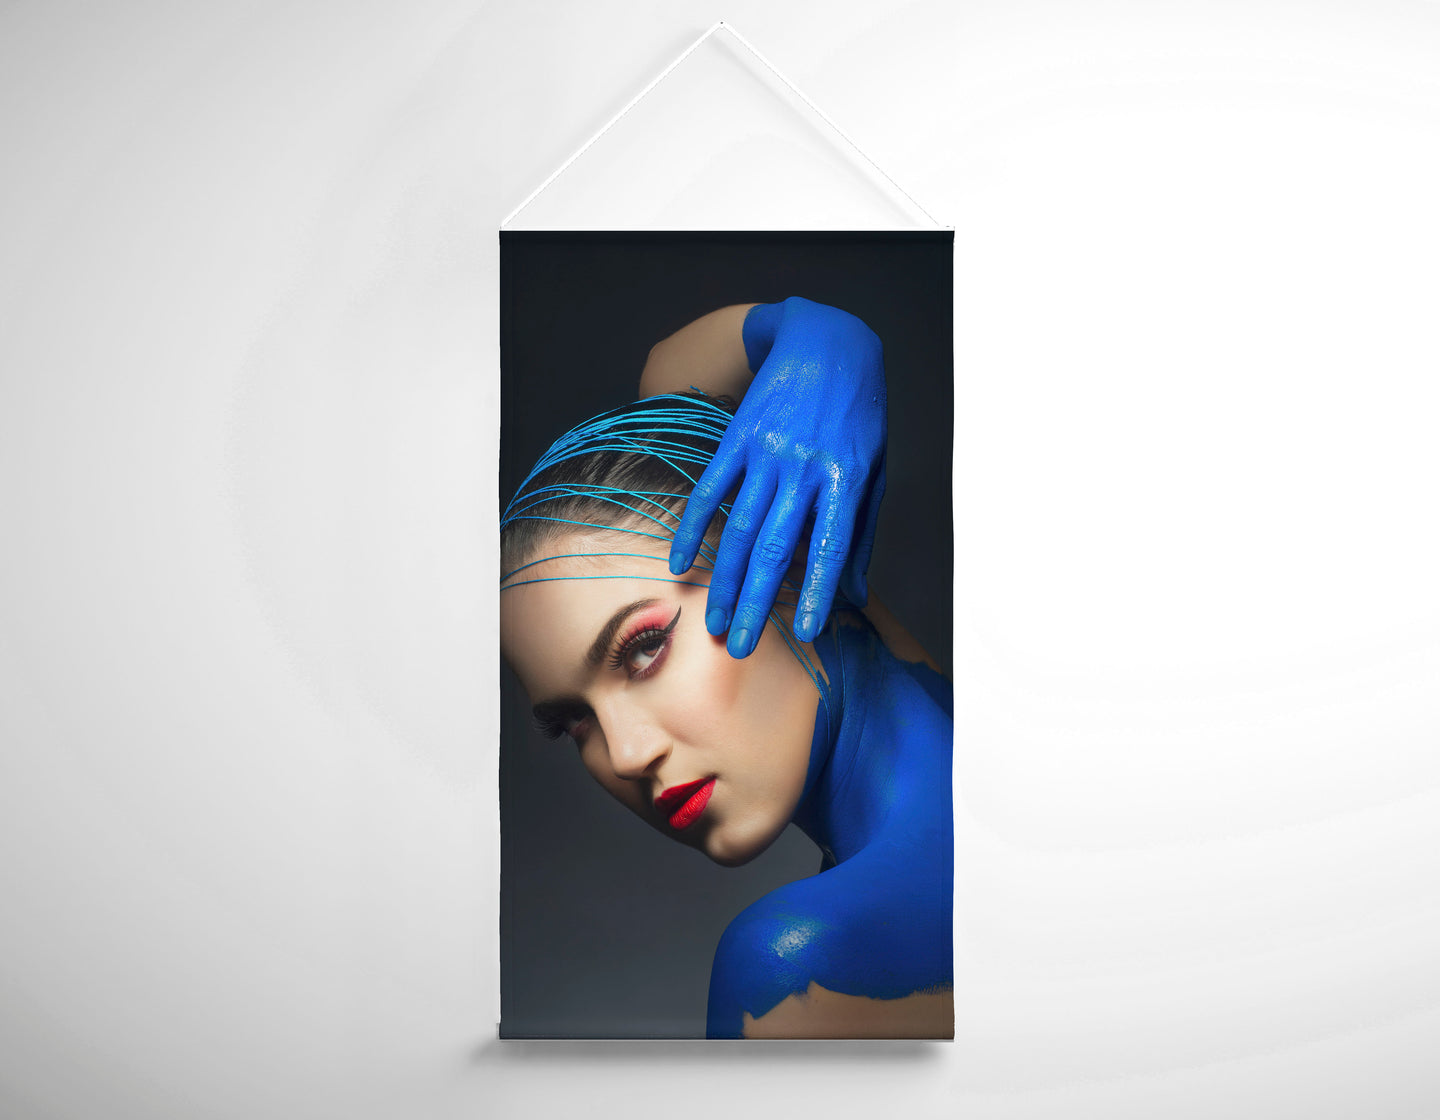 Salon Banner - Woman in Blue Body Paint and Red Makeup